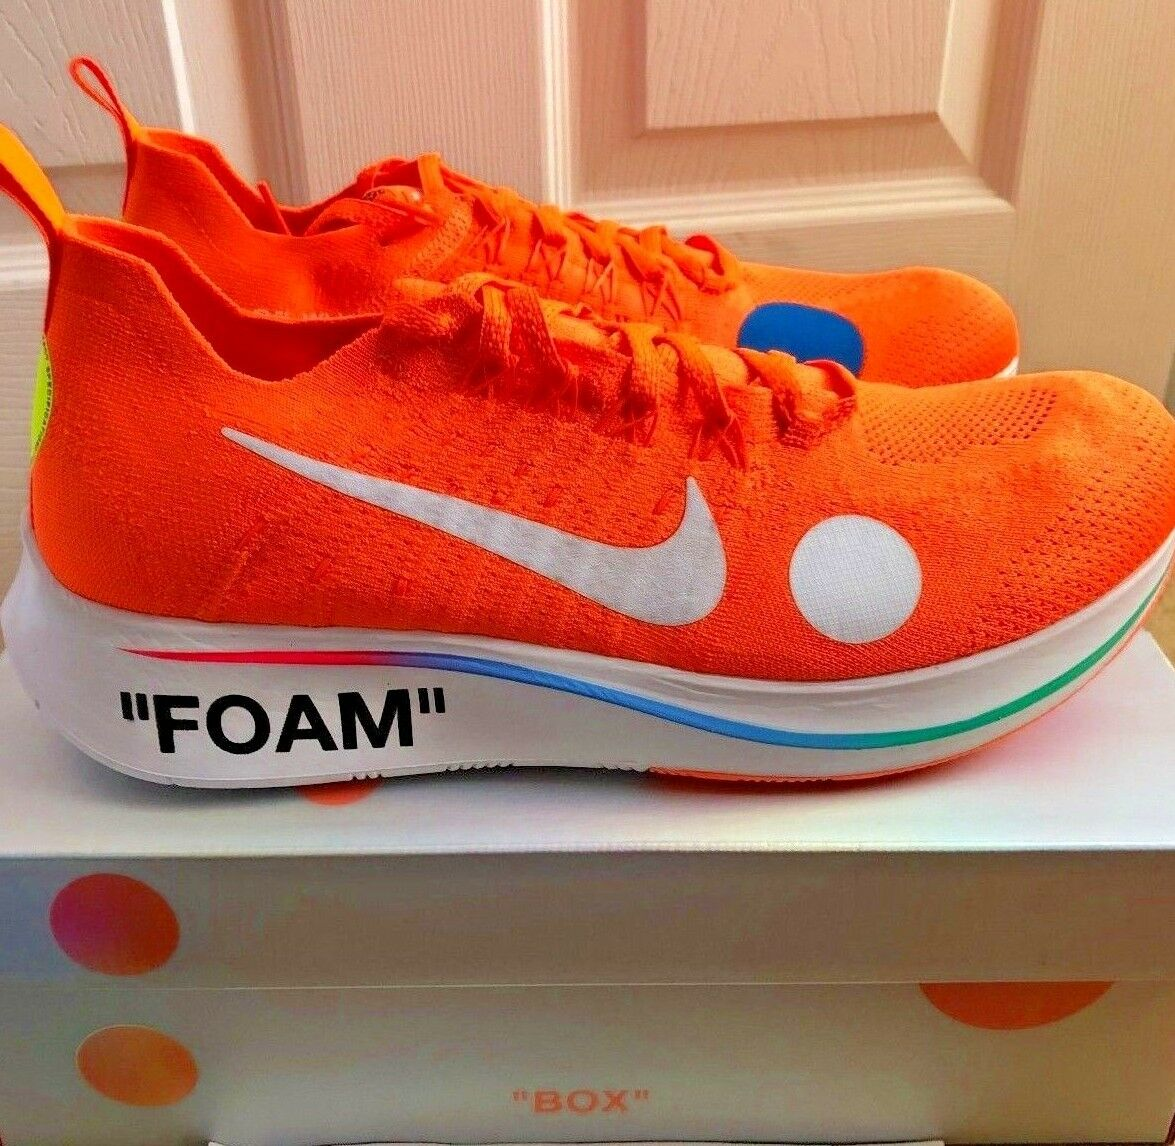 Nike Off blanc Zoom Fly Mercurial Flyknit7 EU 41 Orange Football Mon Amour